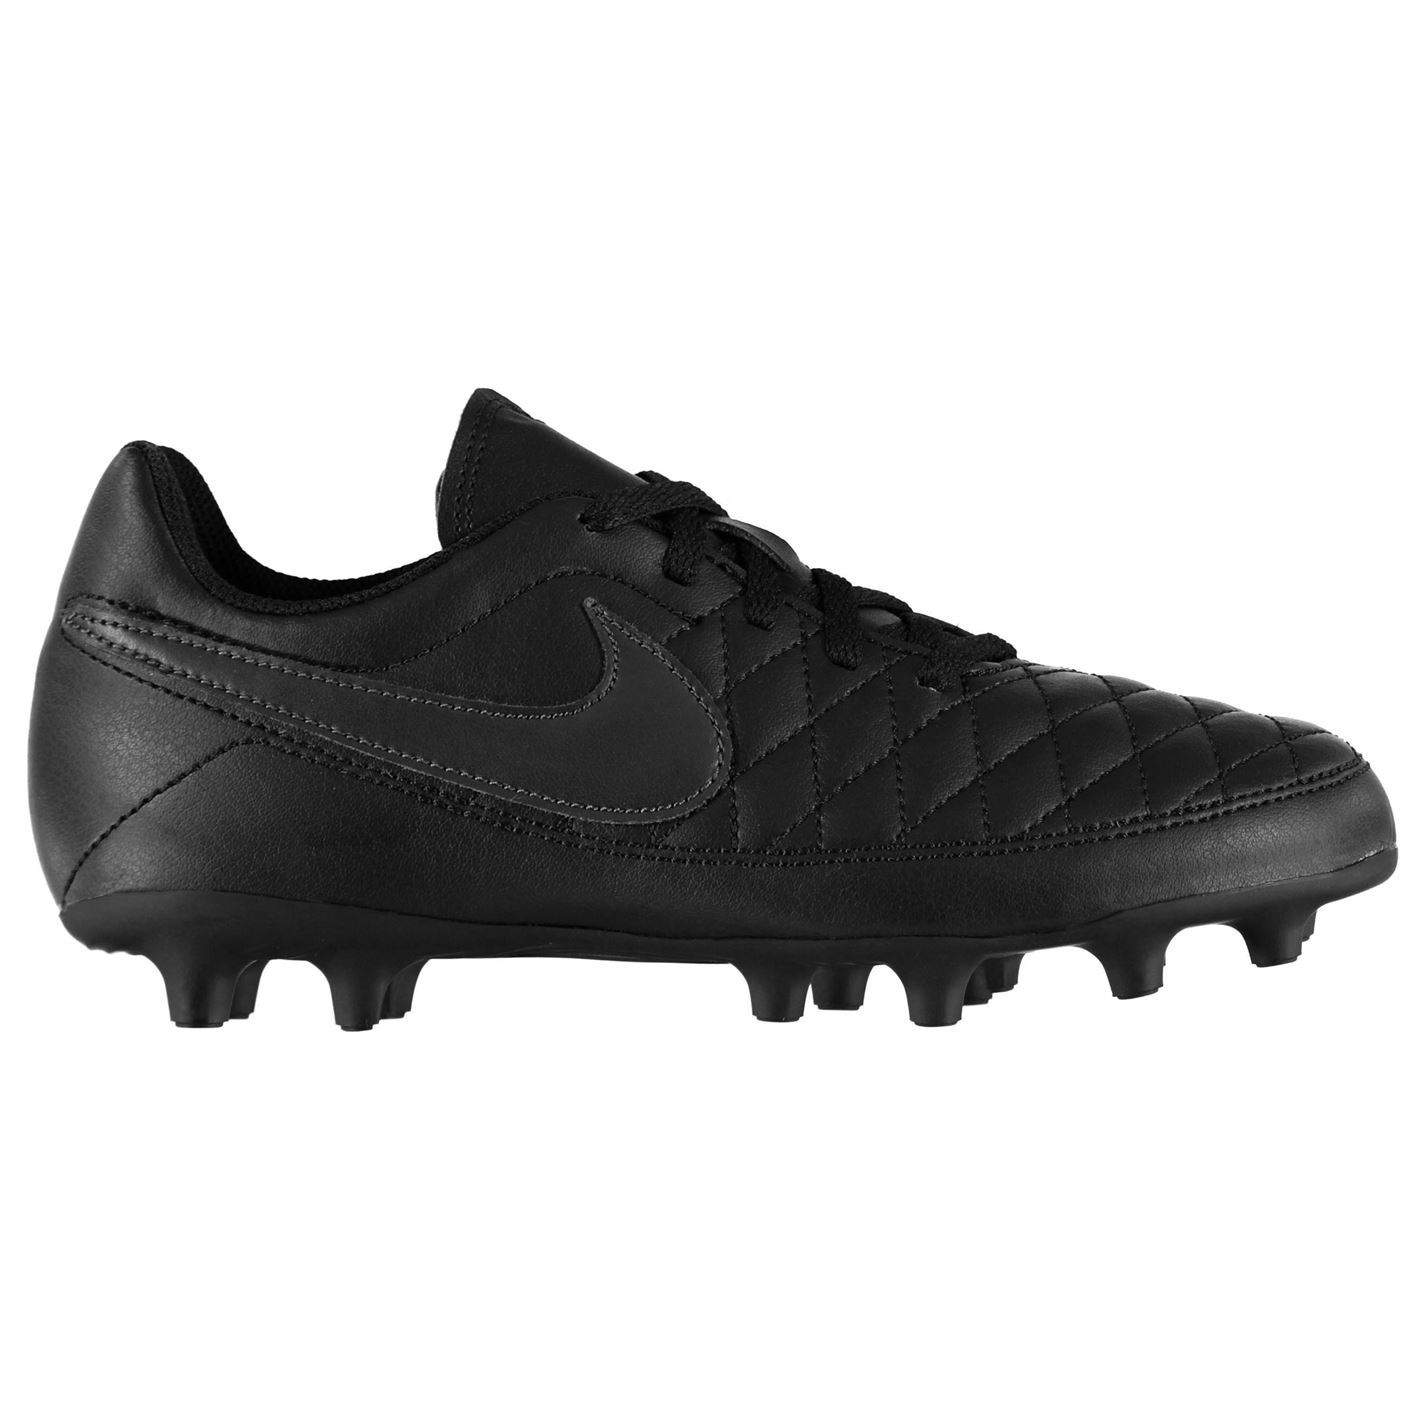 Nike-majestry-FG-Firm-Ground-Chaussures-De-Football-Enfants-Football-Chaussures-Crampons miniature 3